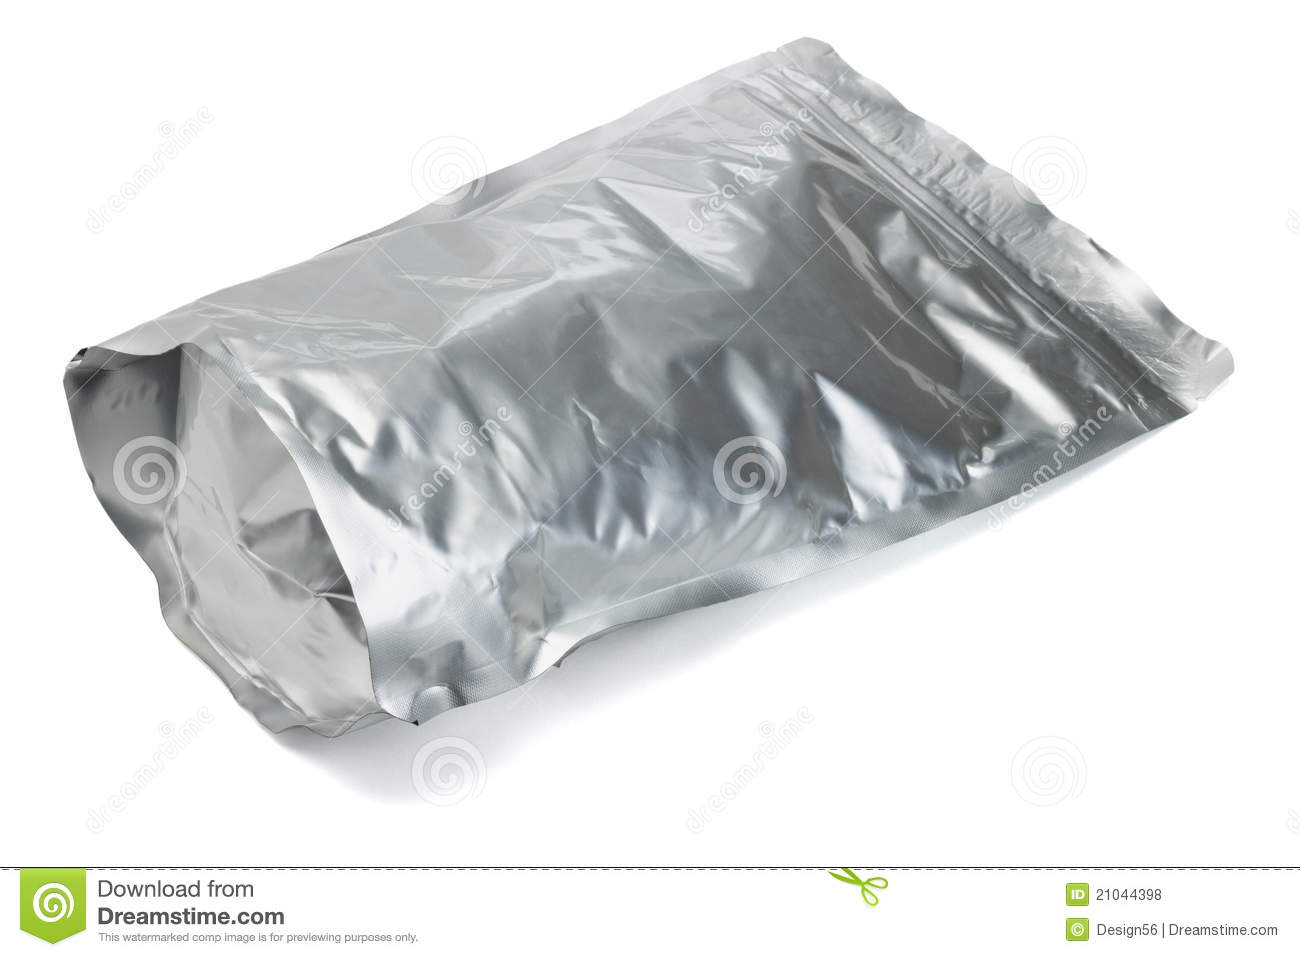 Clip Seal Bags Sealed Aluminum Foil Bag Royalty Free Stock Photos Image